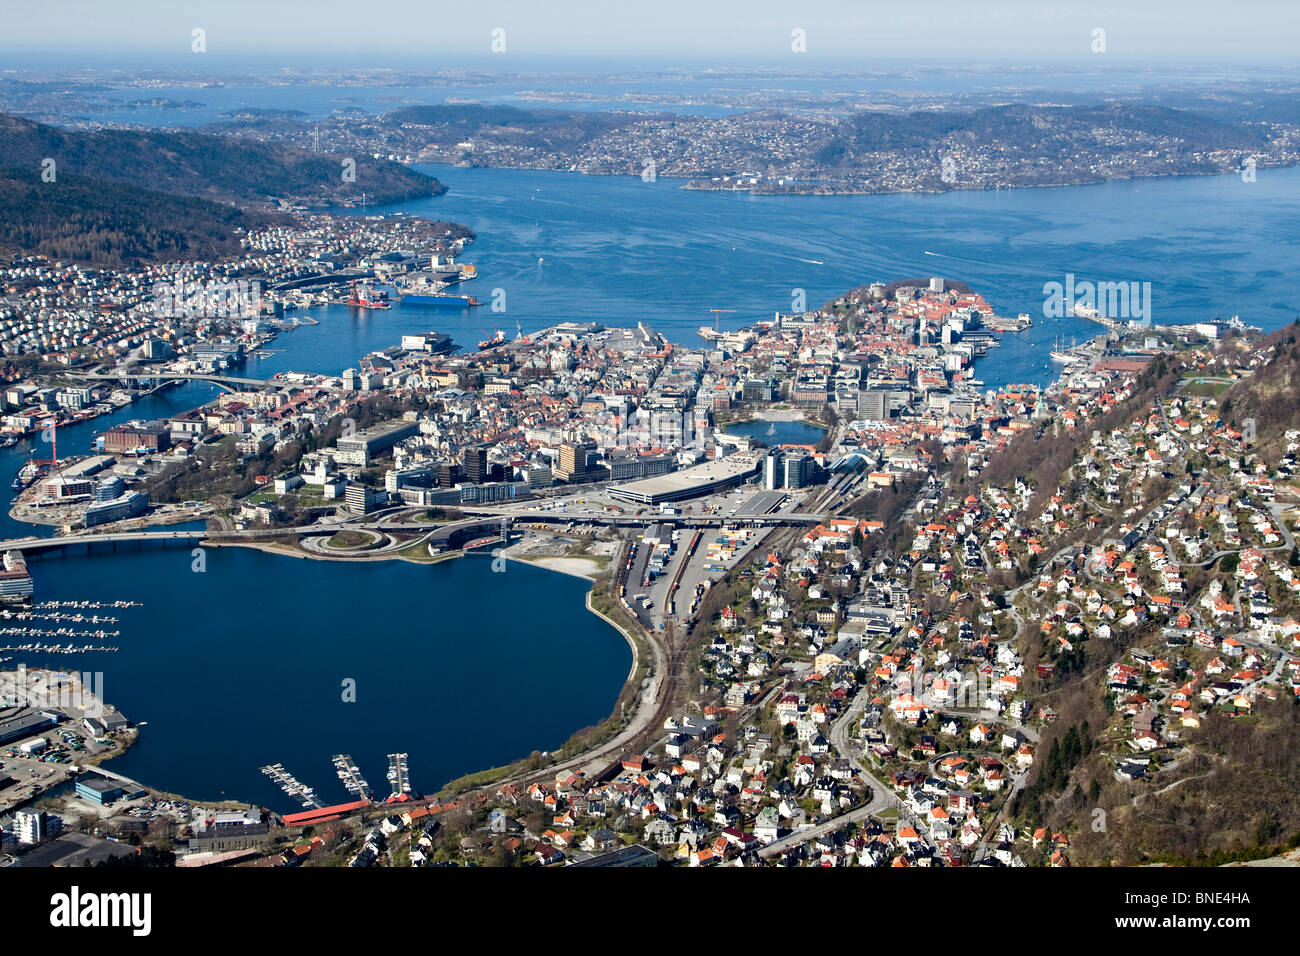 The Norwegian city of Bergen, an important cultural centre in Norway, Europe. - Stock Image